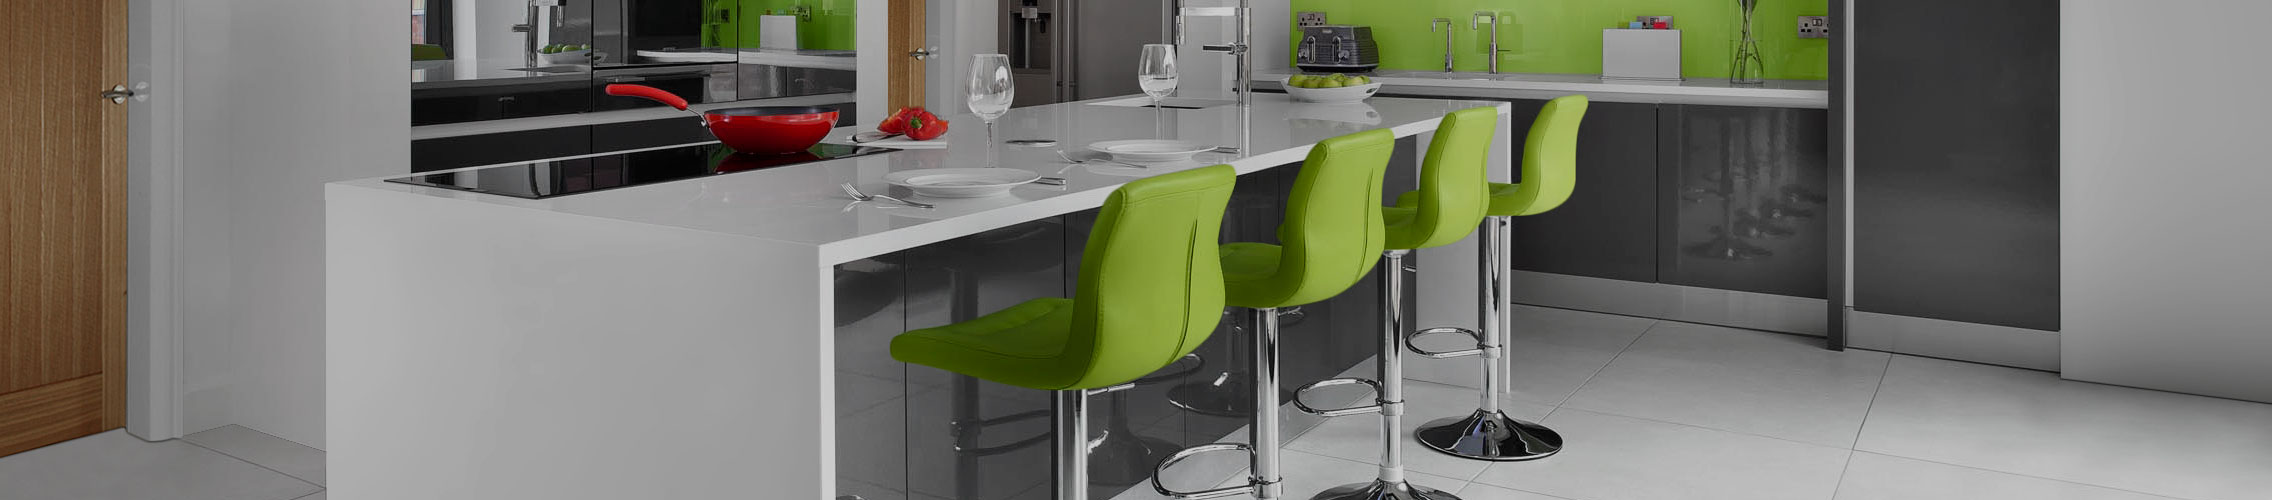 Green Kitchen Stools